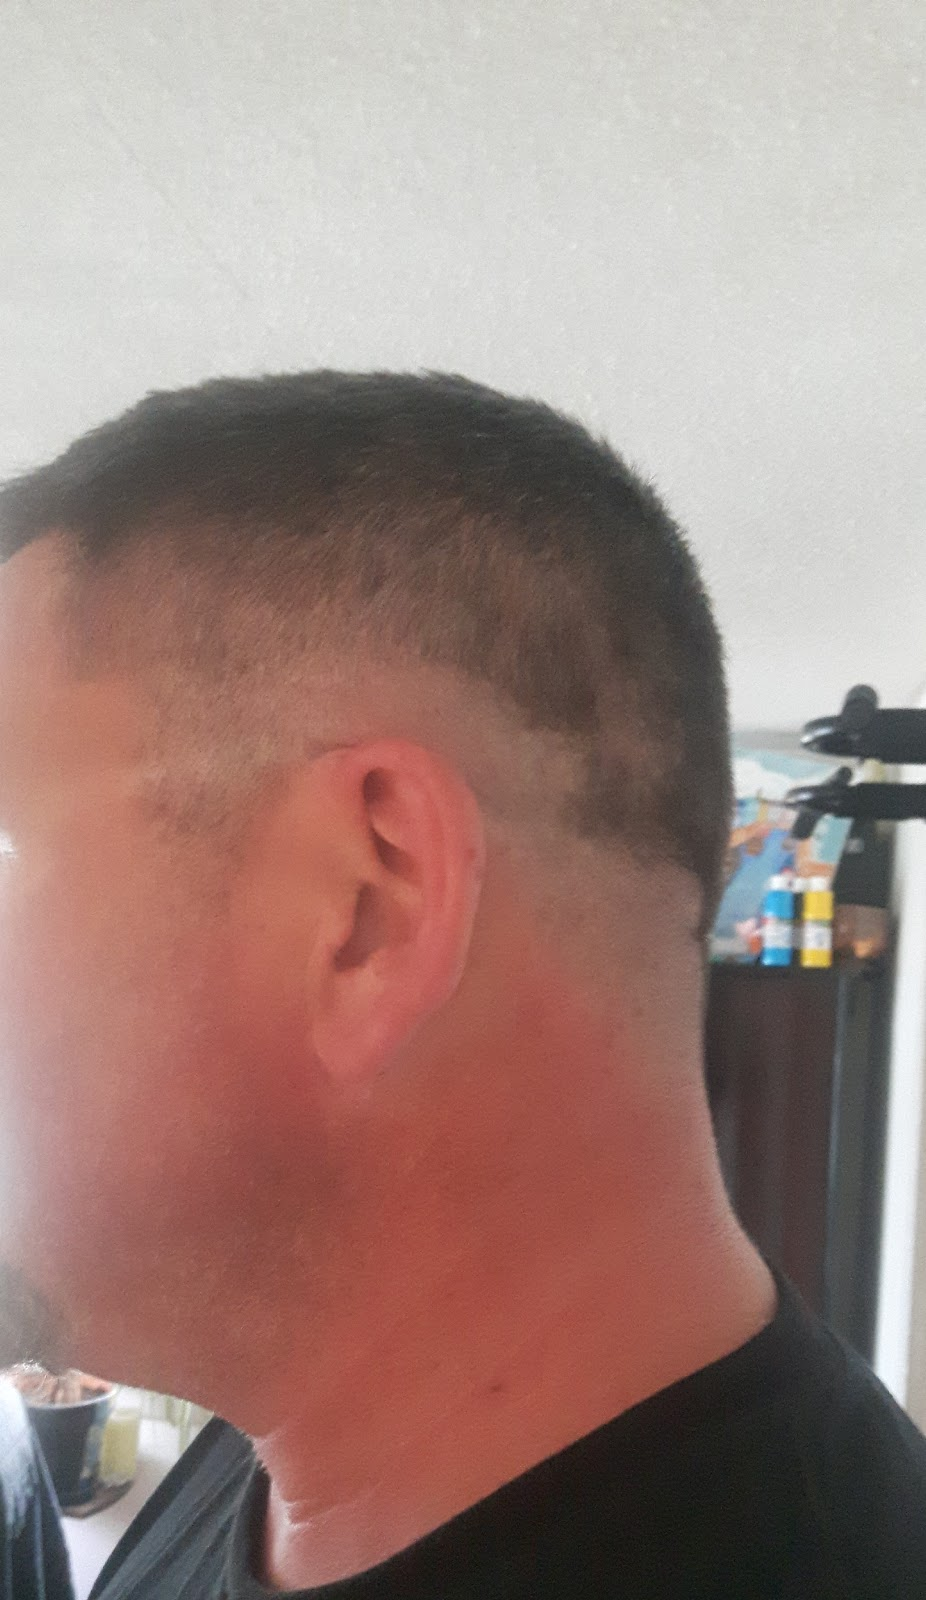 First Choice Haircutters   hair care   1 Strathy Rd, Cobourg, ON K9A 5J6, Canada   9053730609 OR +1 905-373-0609